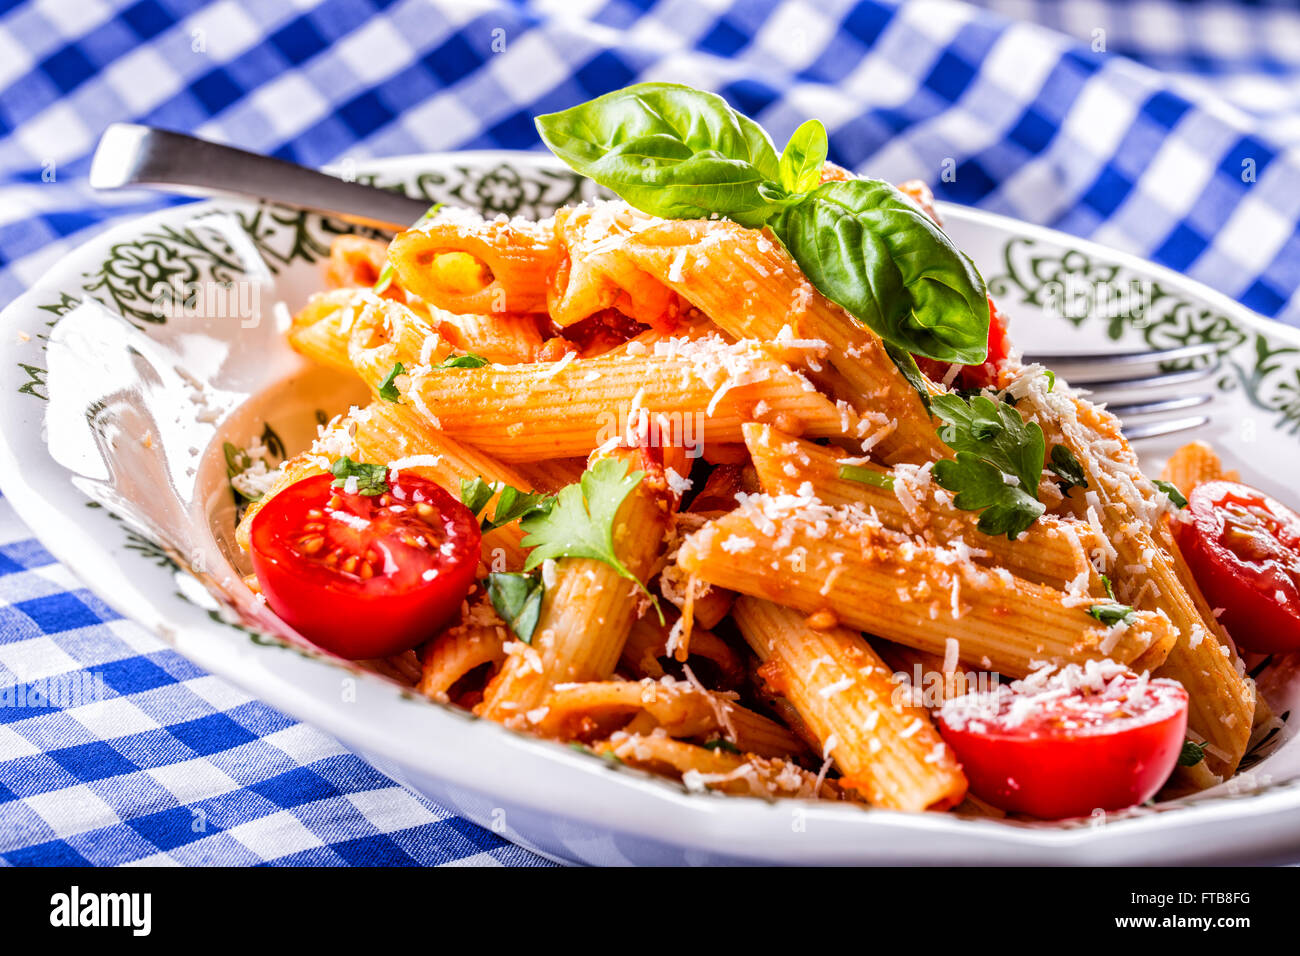 Plate with pasta pene Bolognese sauce cherry tomatoes parsley top and basil leaves on checkered blue tablecloth. - Stock Image